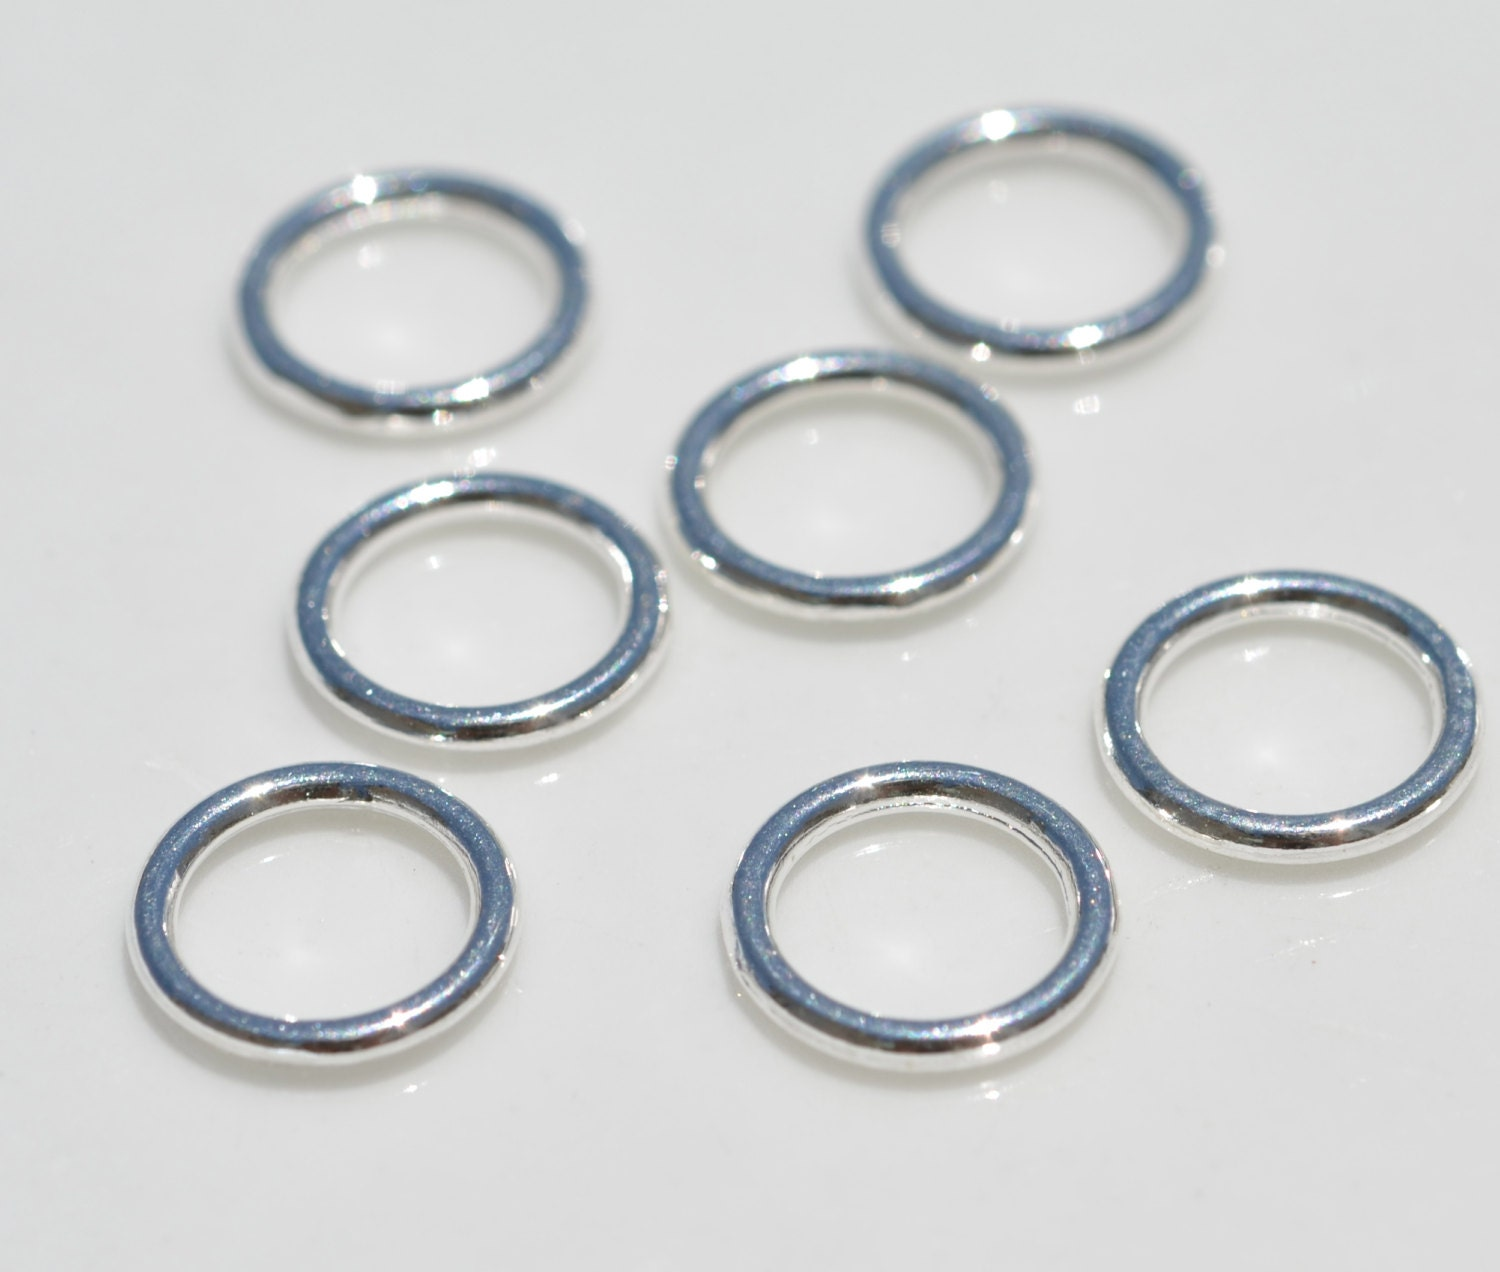 50 silver 8mm jump rings soldered f126